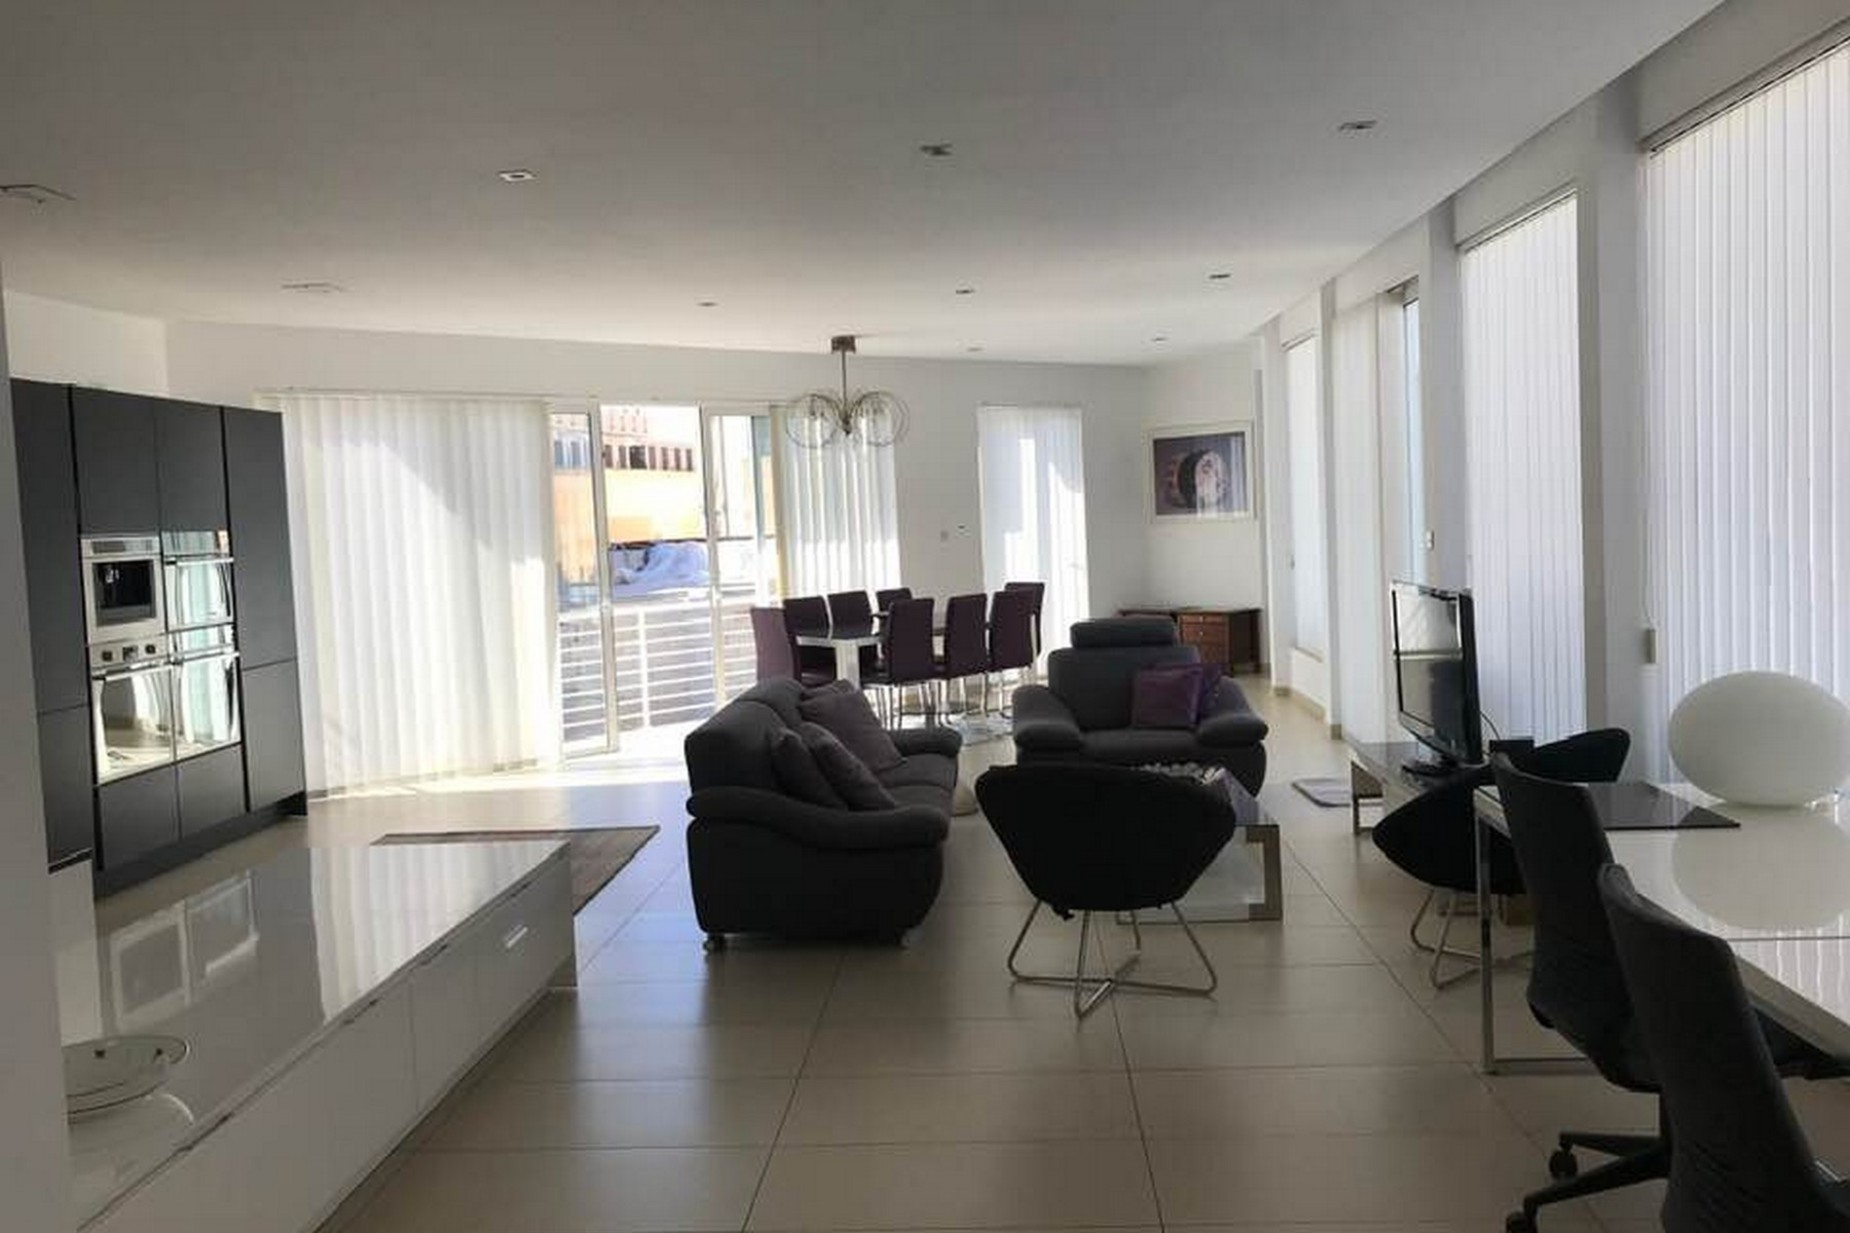 4 bed Penthouse For Rent in Sliema, Sliema - thumb 2